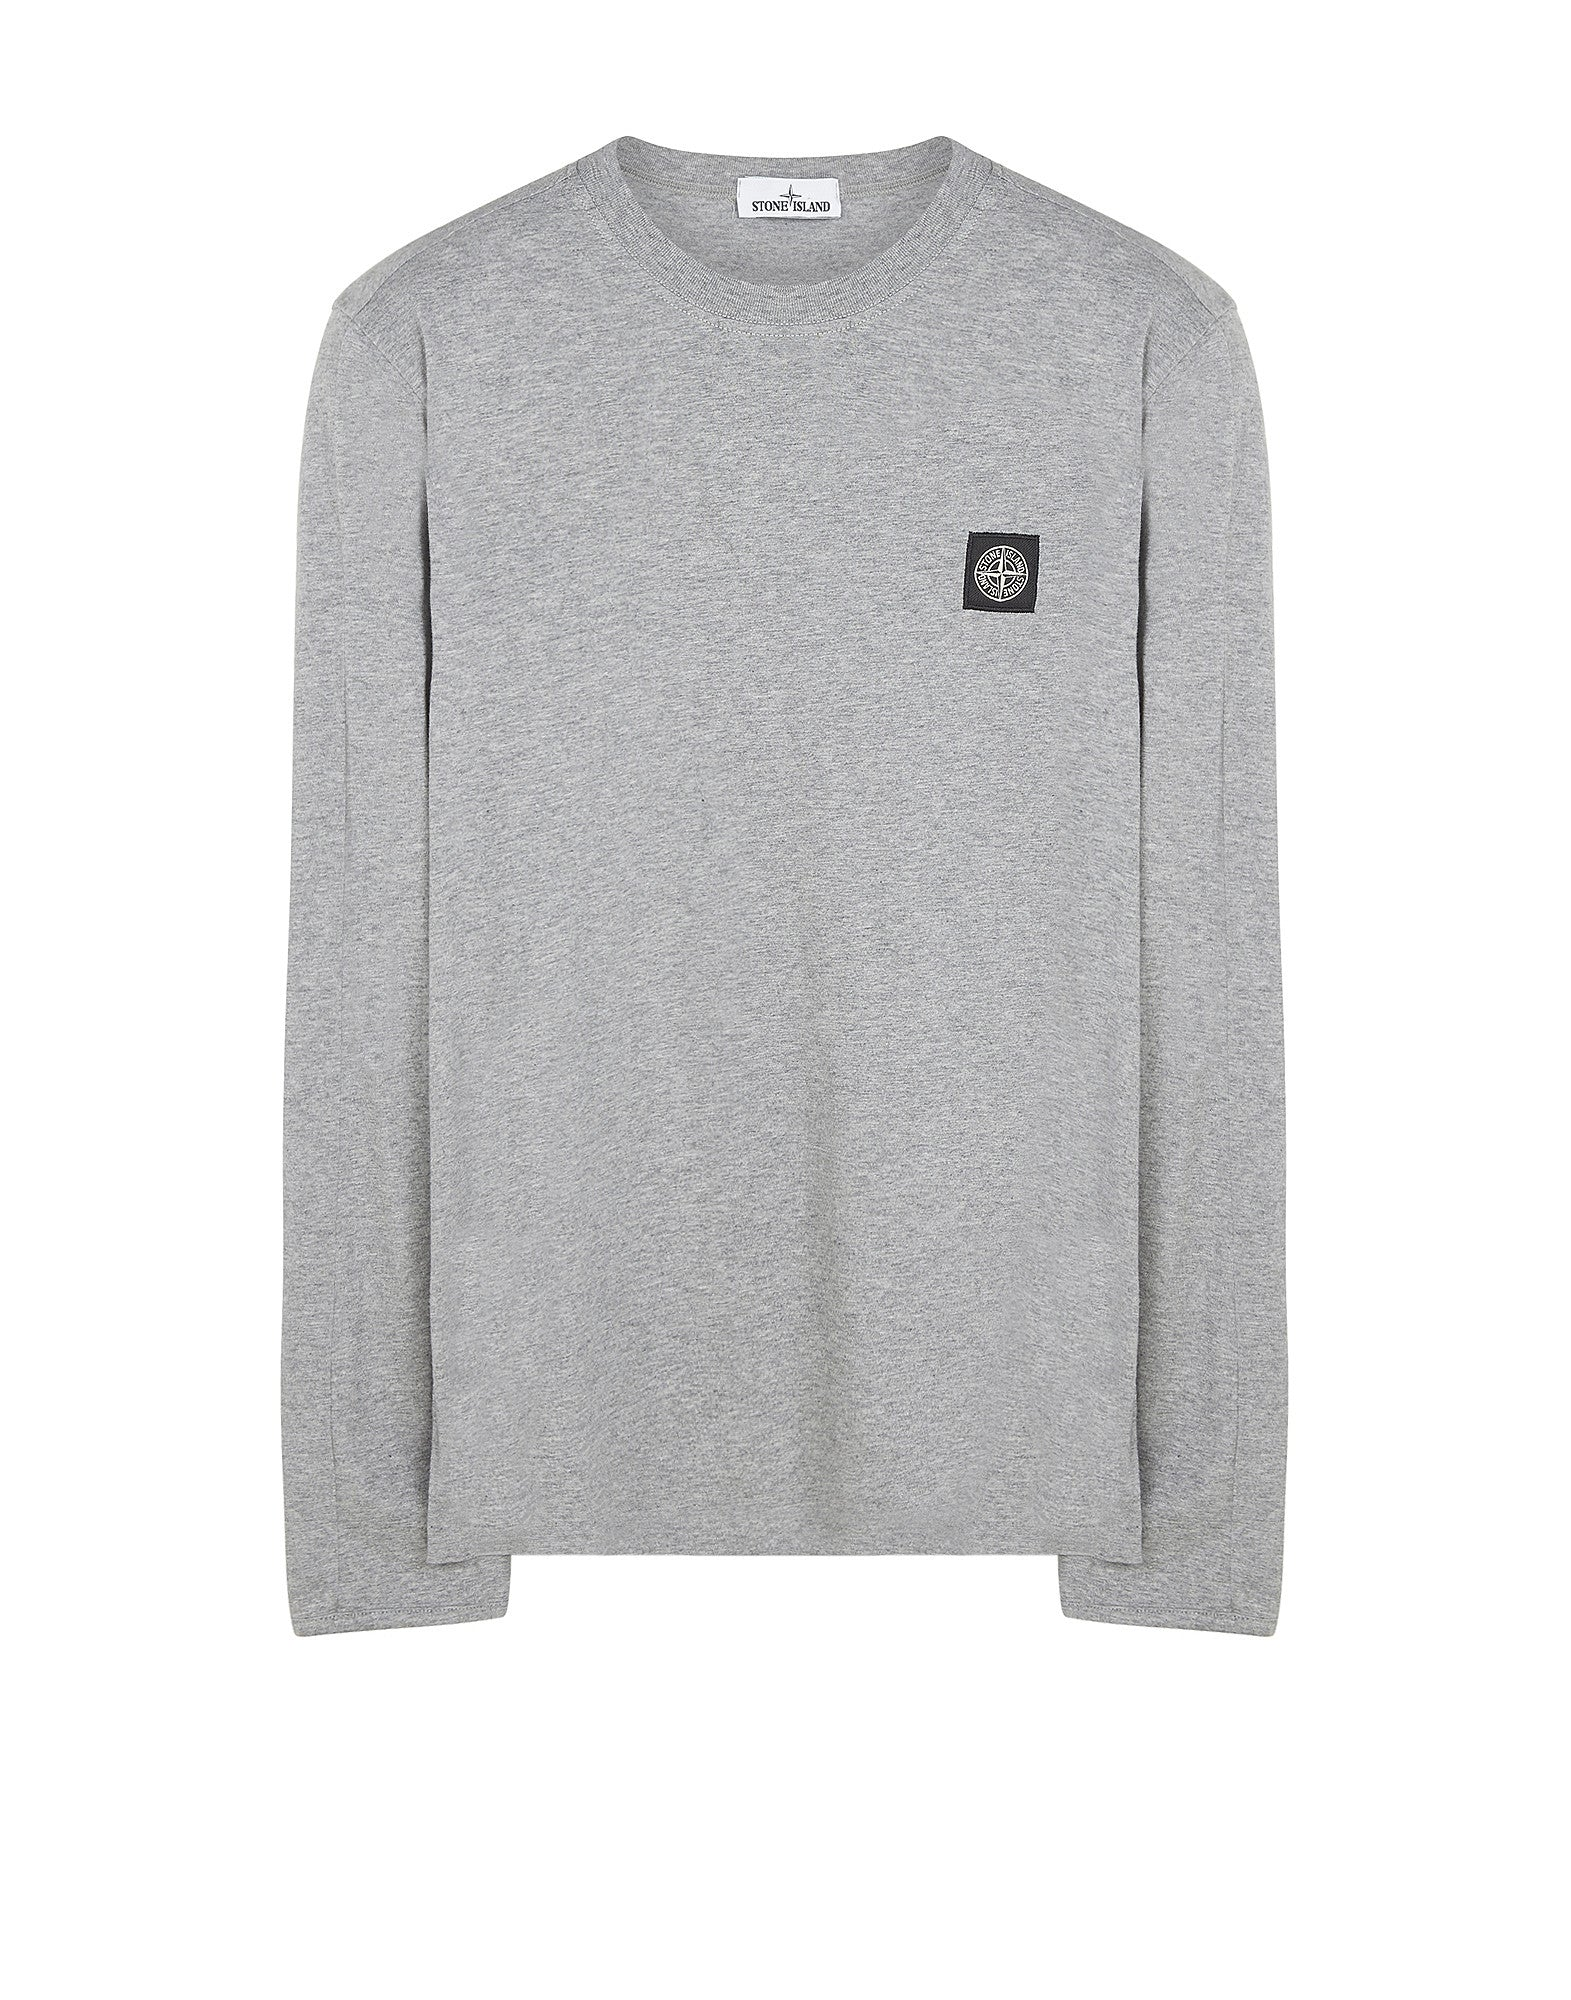 20541 Long Sleeve T-Shirt in Grey